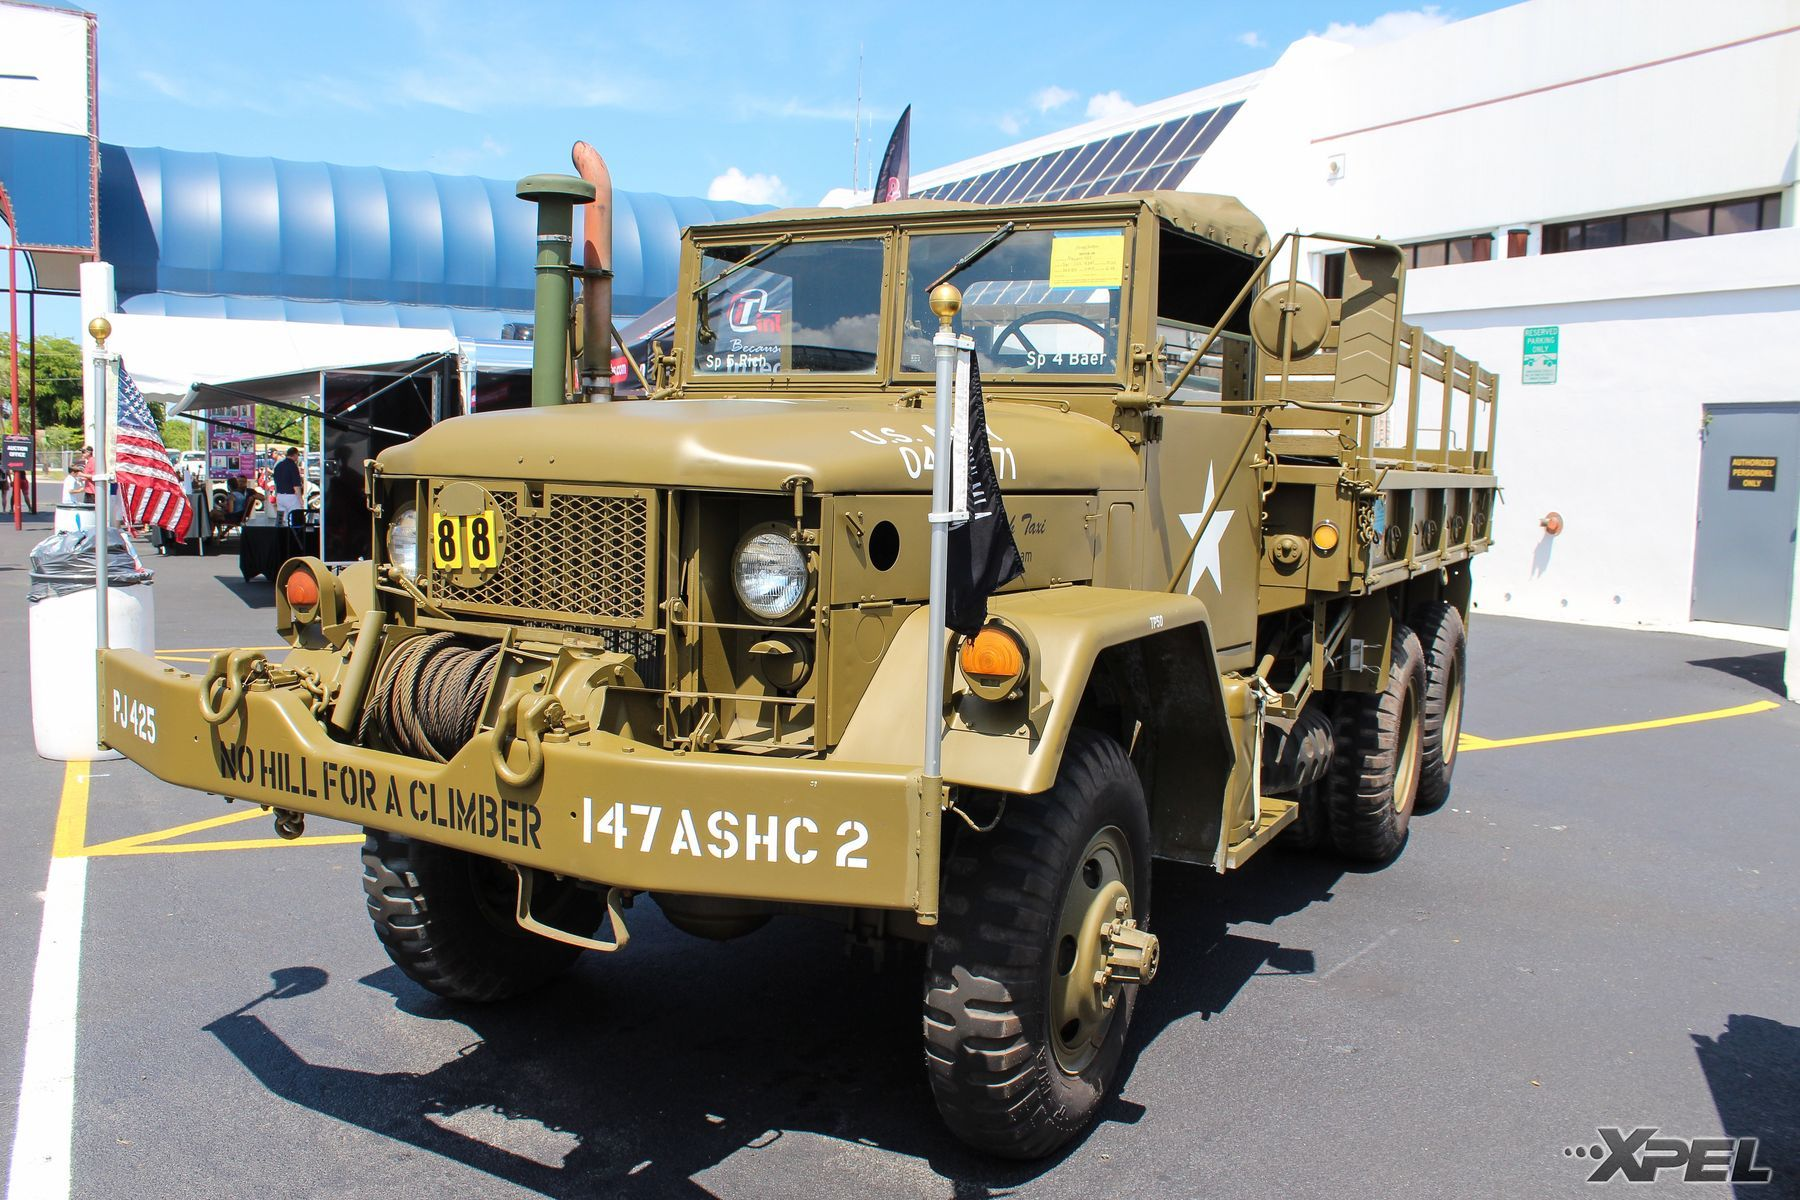 | Old Military Vehicle on display!